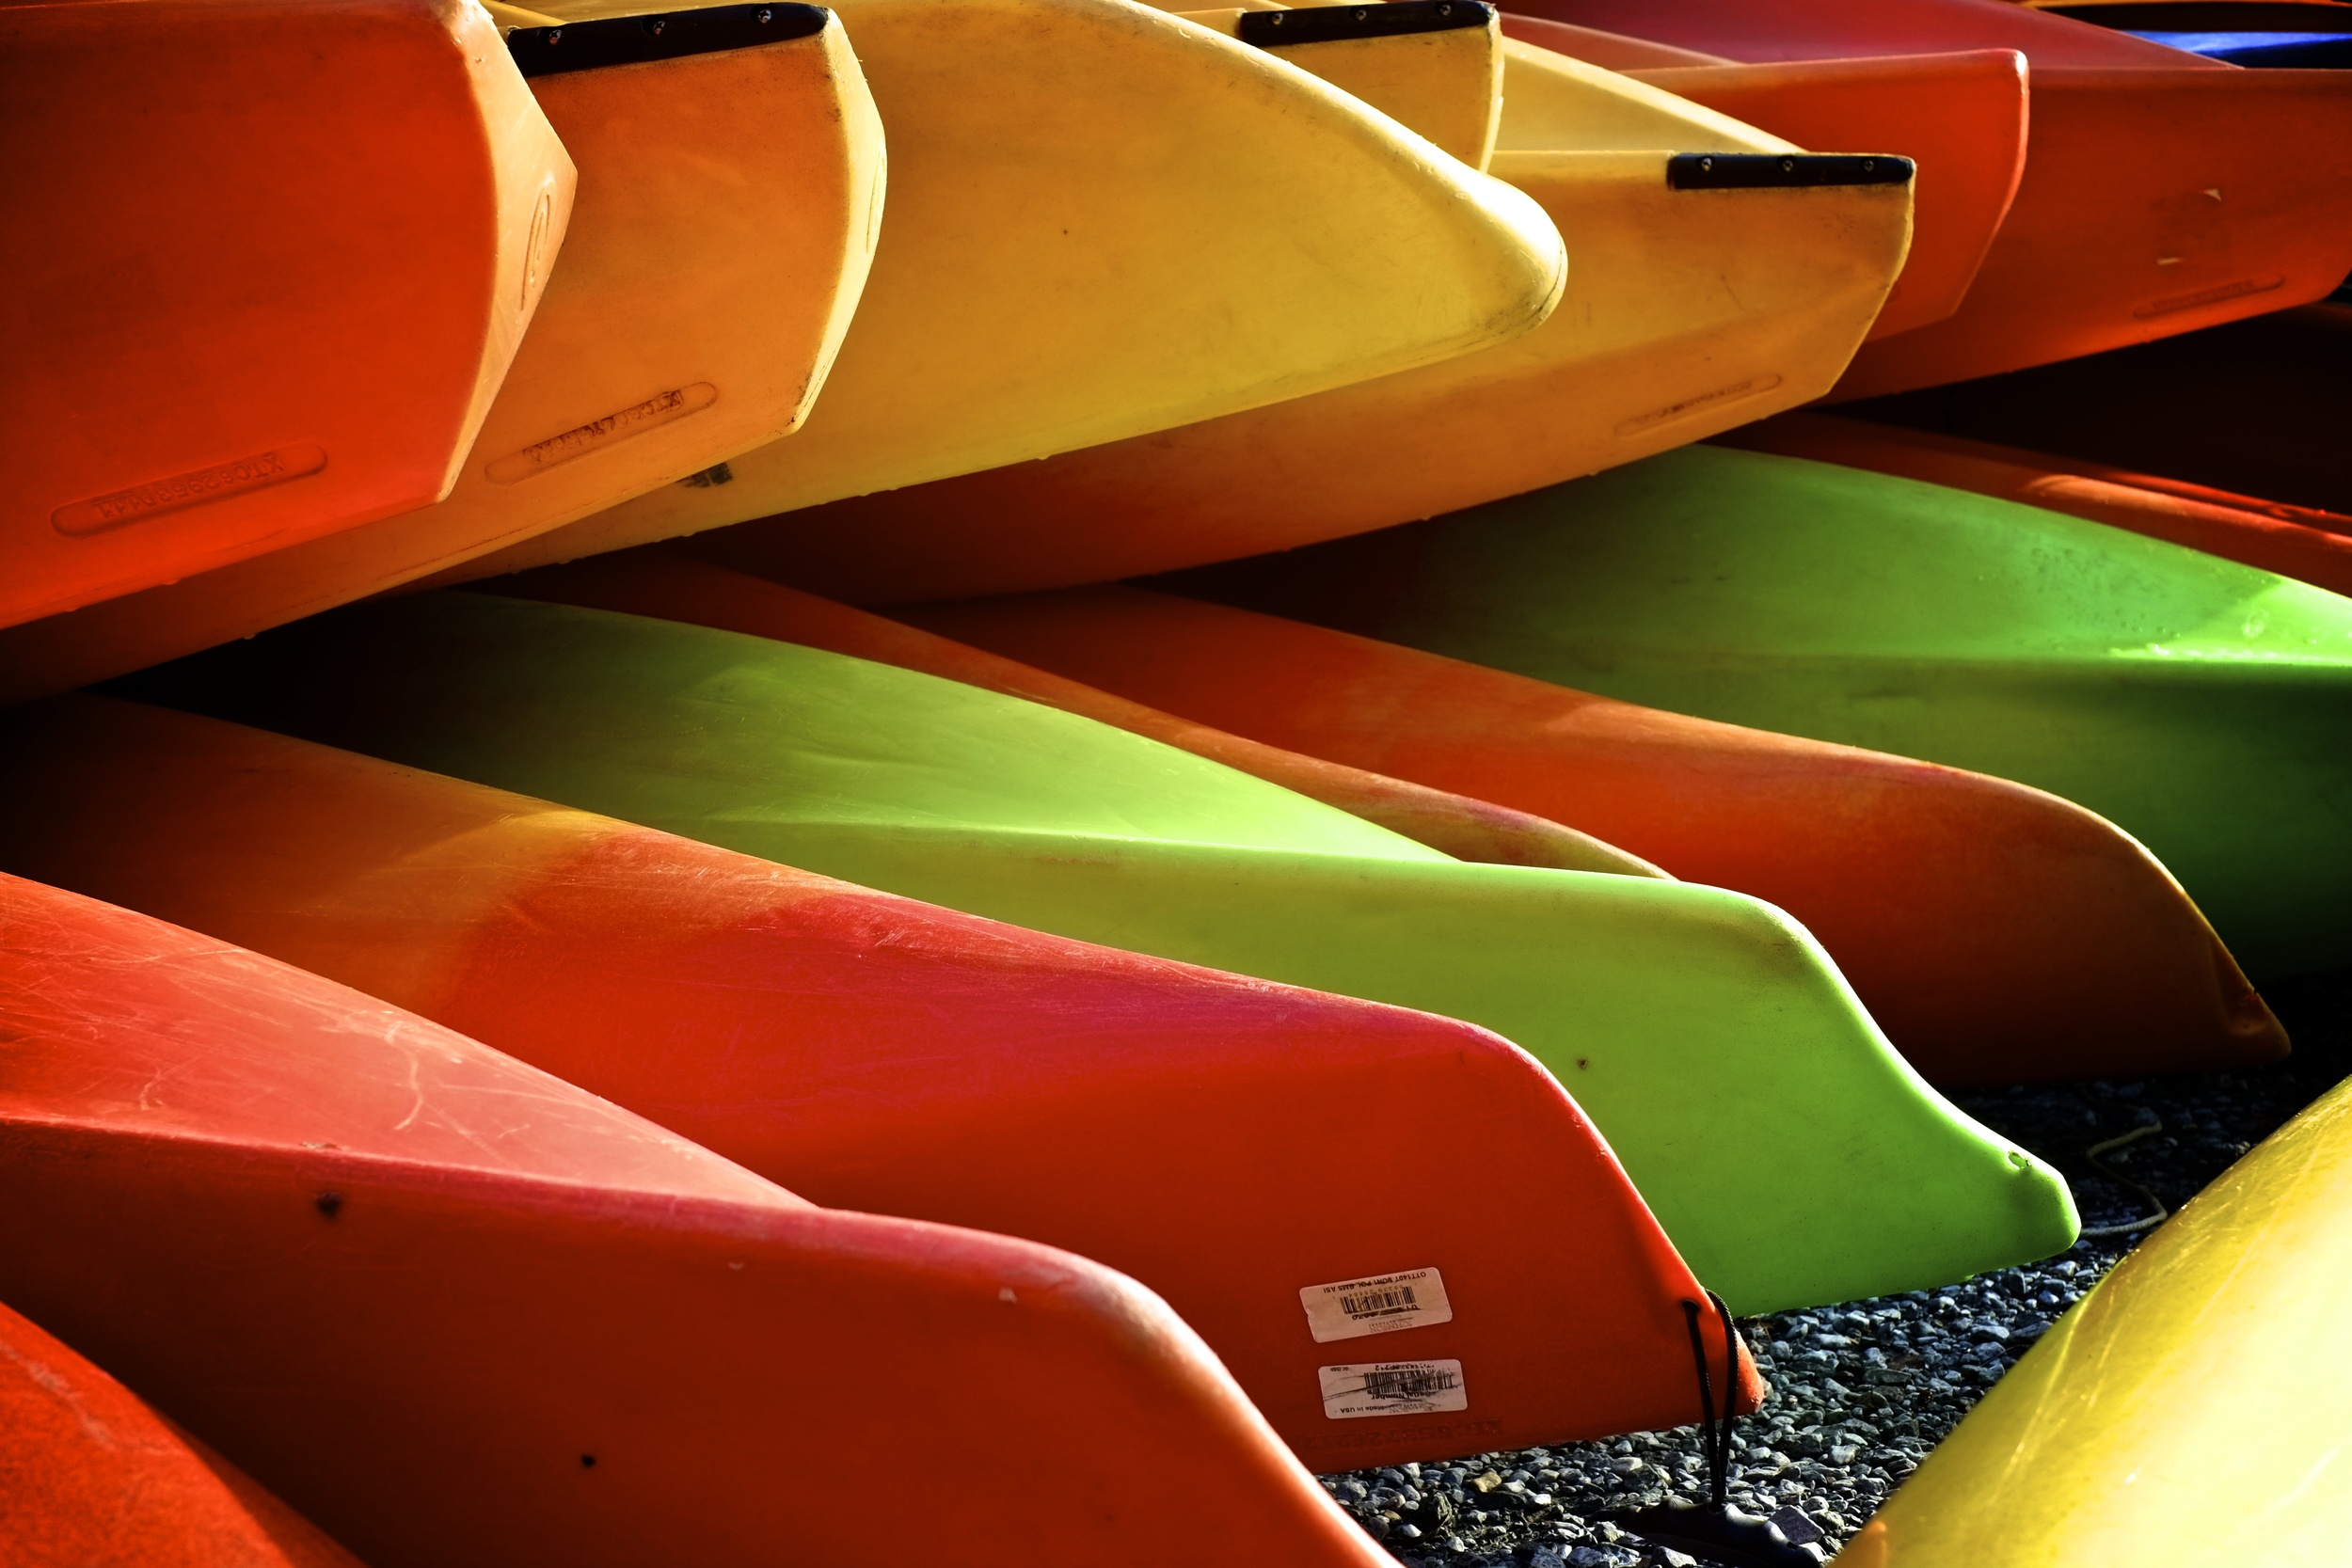 Kayak's at Jack's Boathouse in Georgetown. ISO 320, f5.6, 1/200 at 35mm.